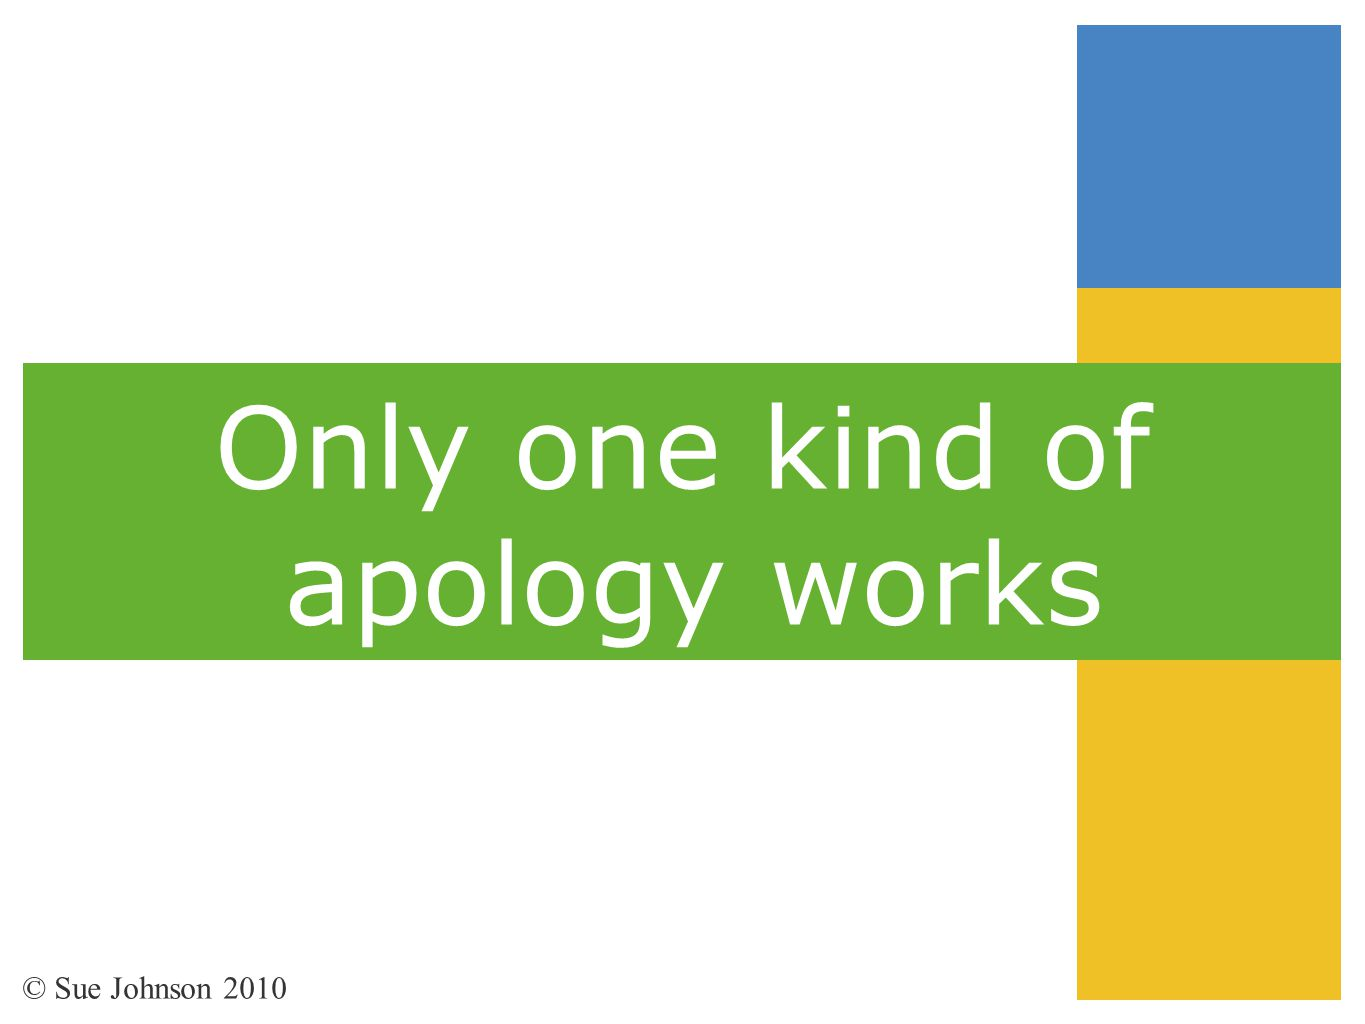 Only one kind of apology works